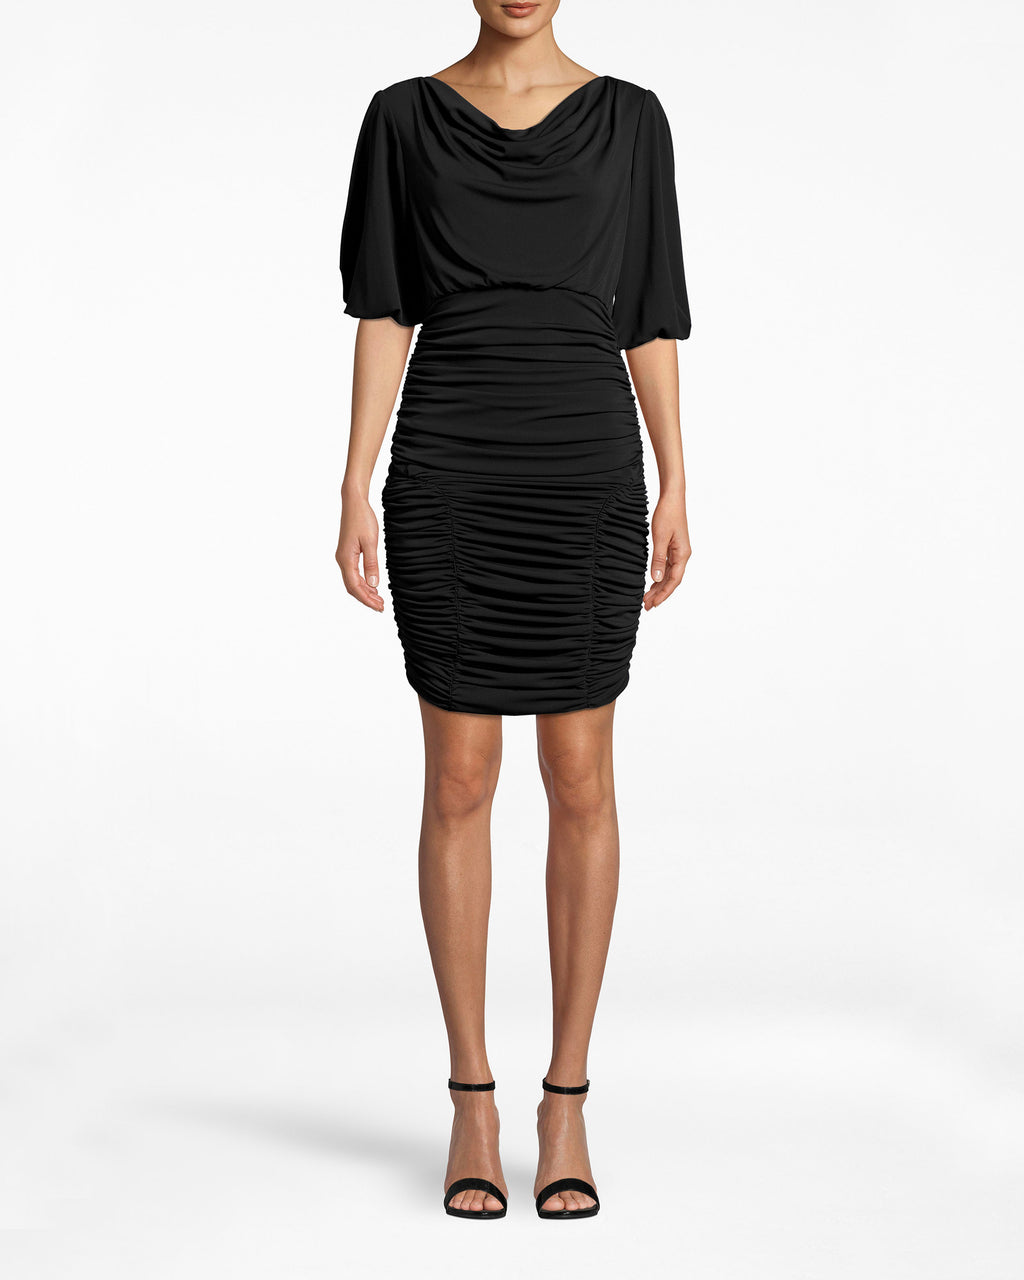 BO10169 - STRETCHY MATTE JERSEY RUCHED DRESS - dresses - short - The draping sleeves on this Stretchy Matte Jersey Dress are an elegant contrast to the ruched skirt. Pair with high heels and take on the evening. Exposed back zipper for closure.